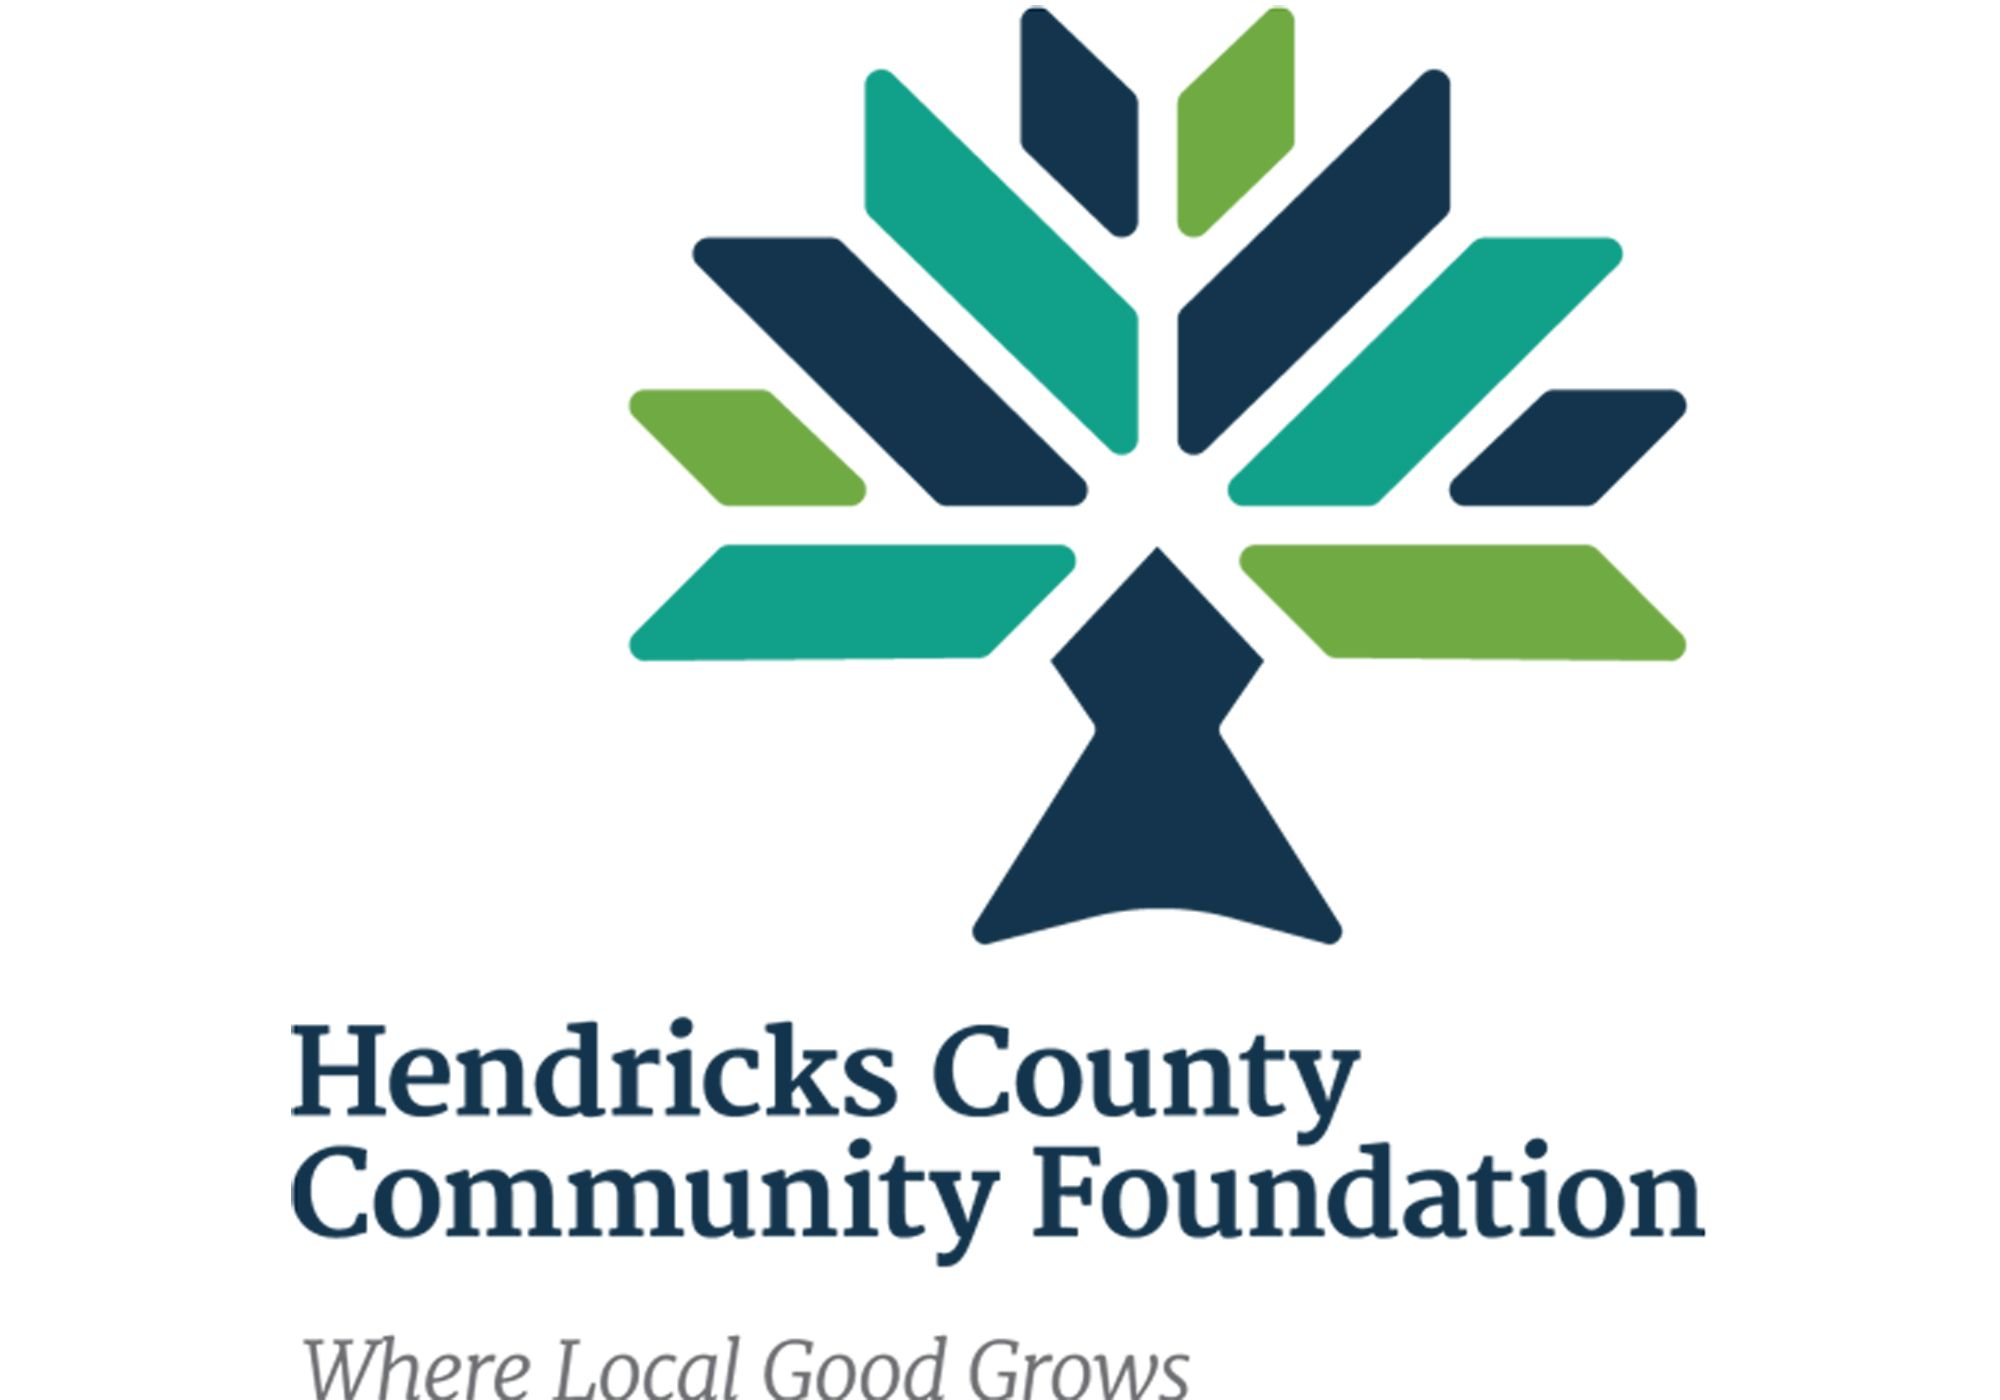 Community Foundation Awards over $35,000 in Grants